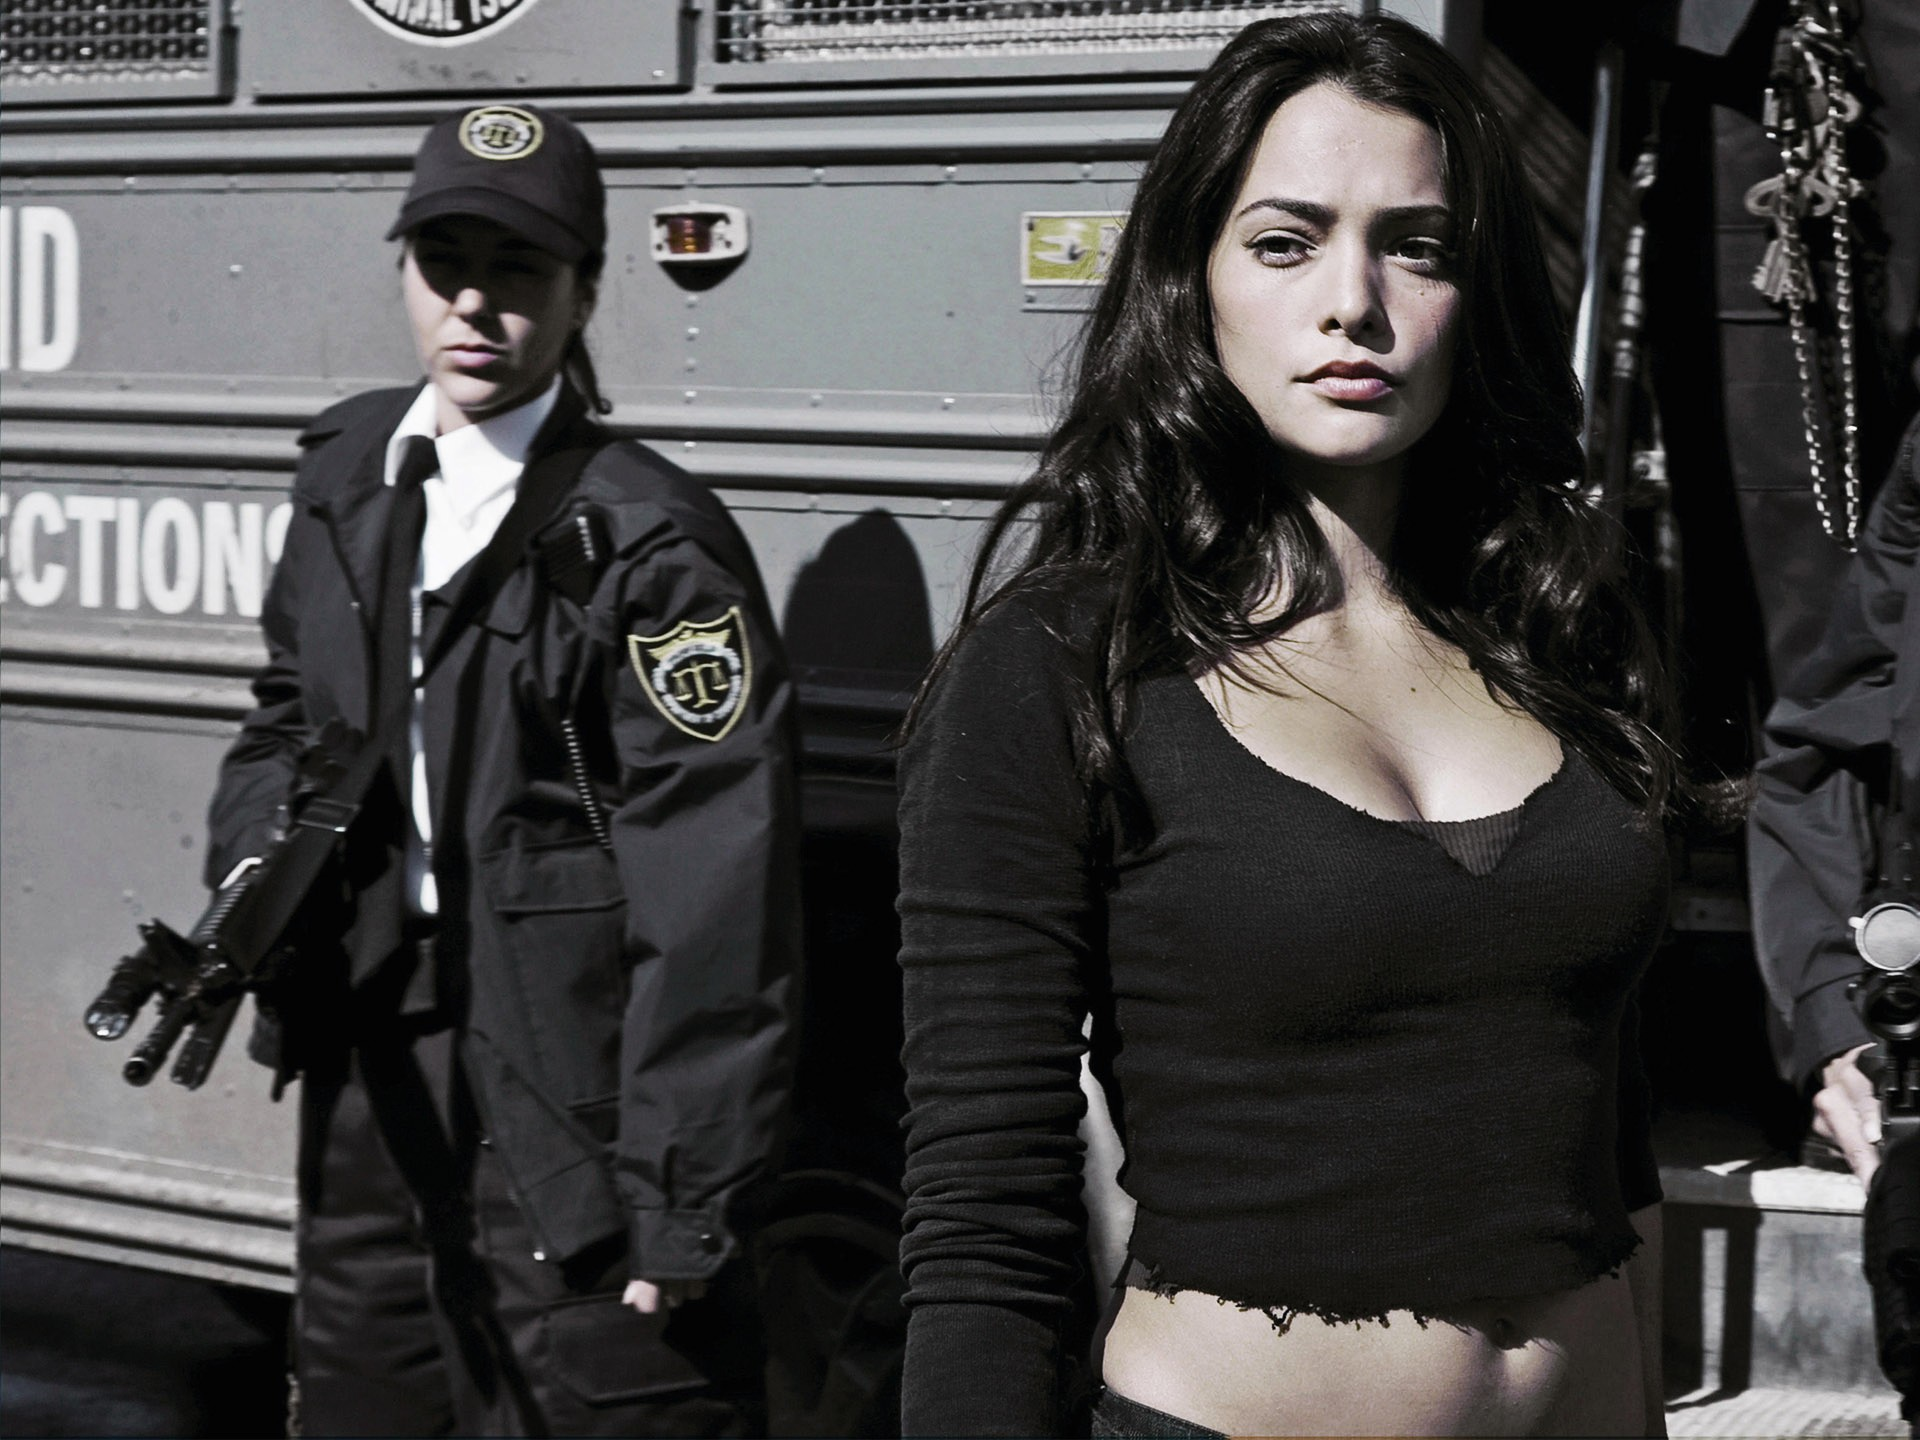 Death Race Girl Natalie Martinez 596.38 Kb